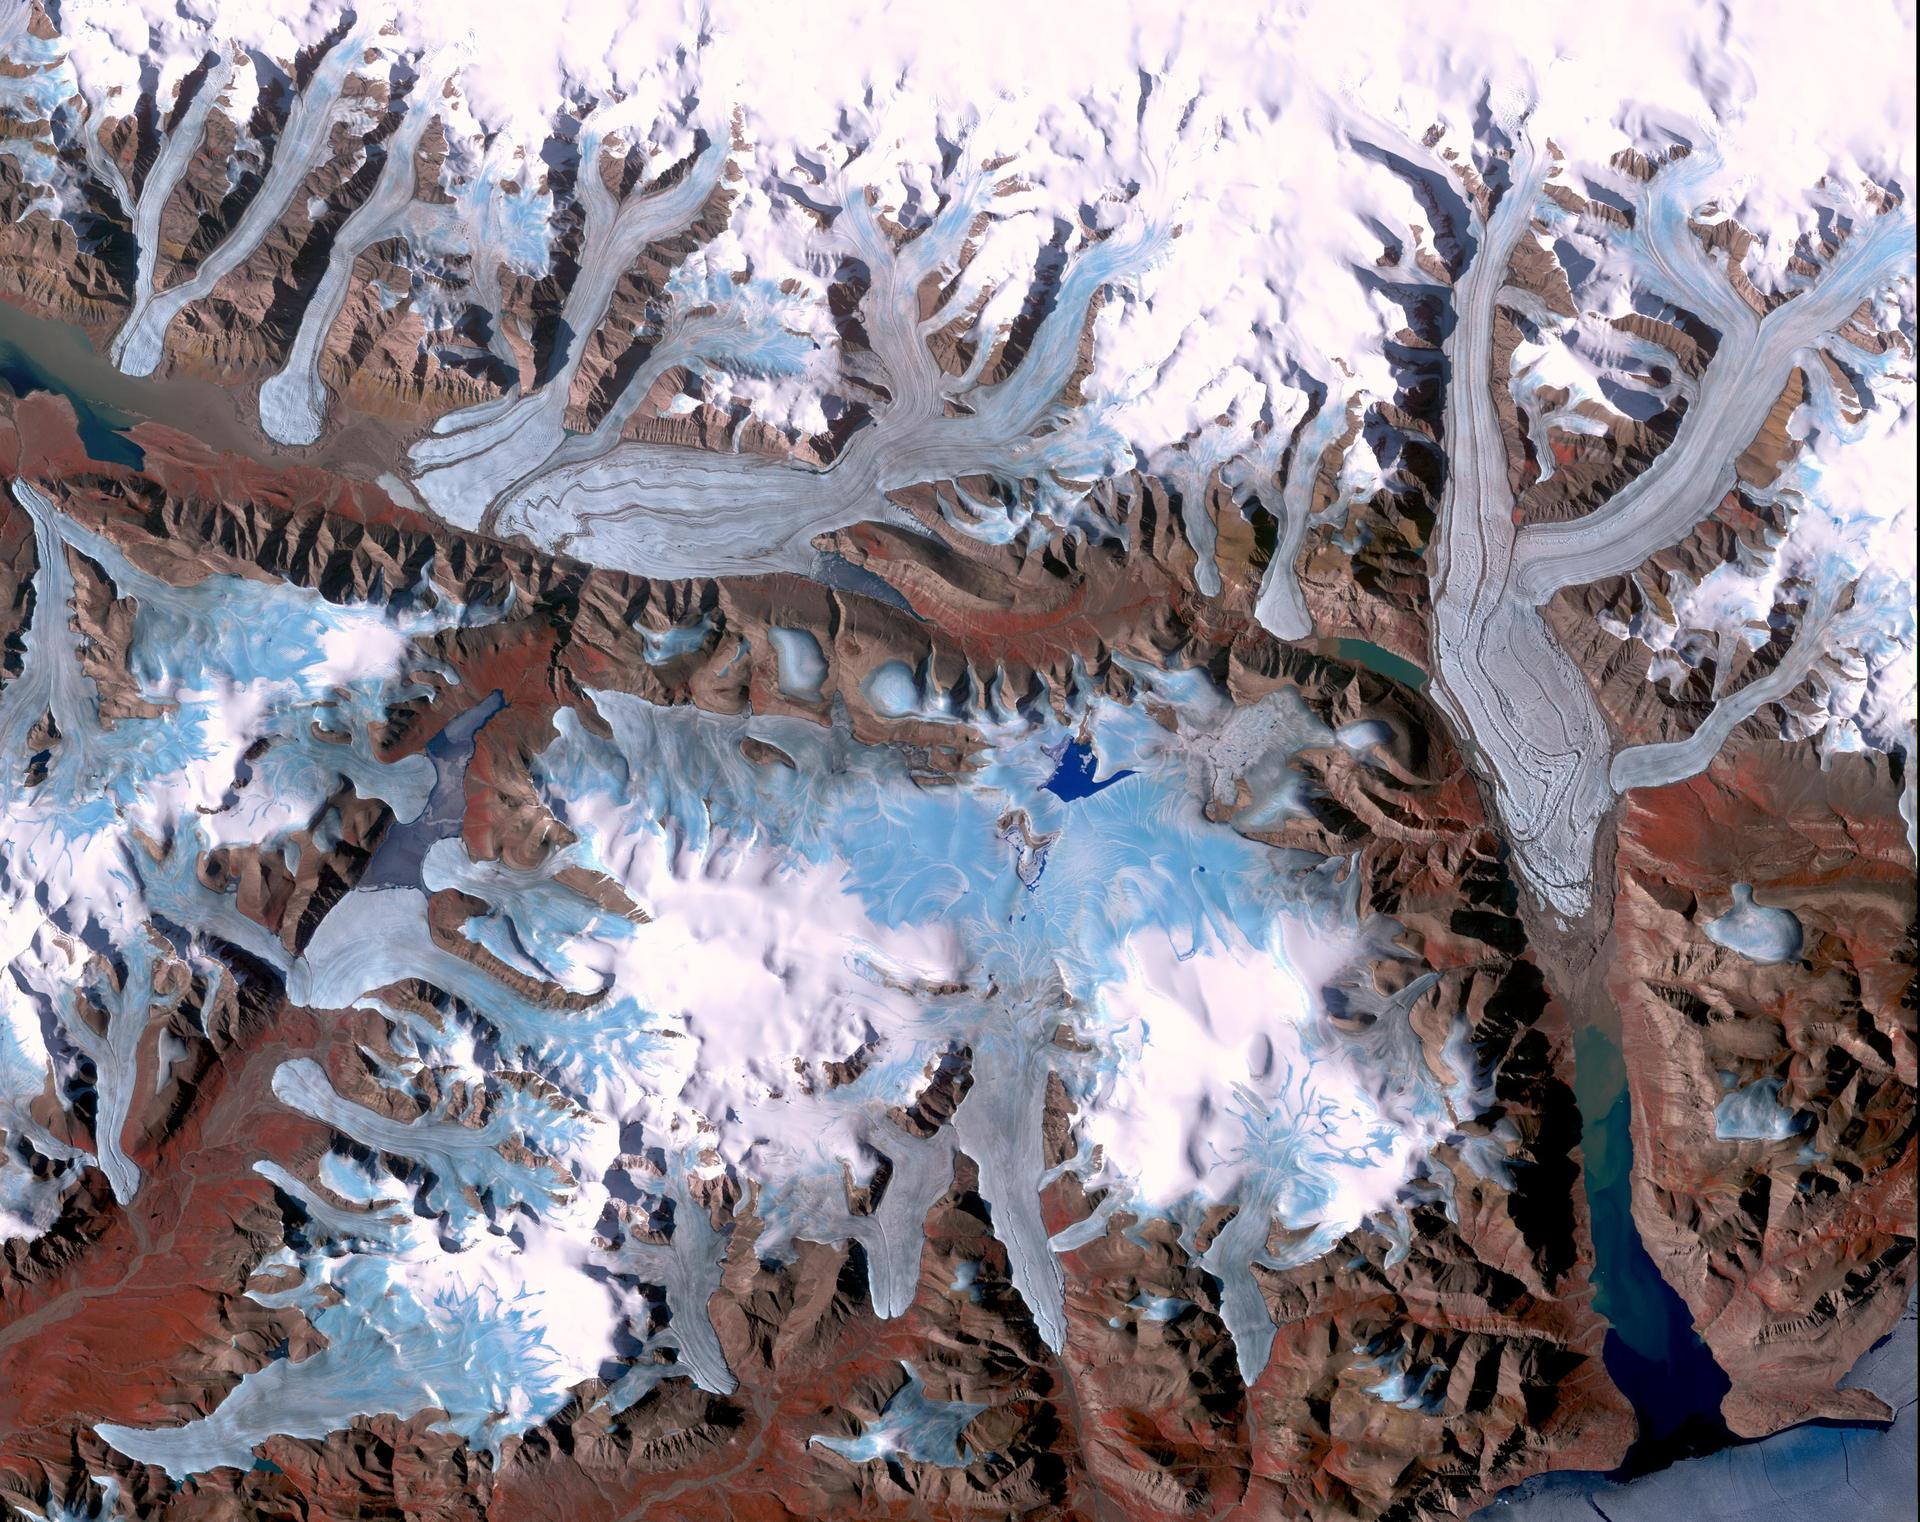 Ellesmere Island, Canada, taken by NASA Terra spacecraft